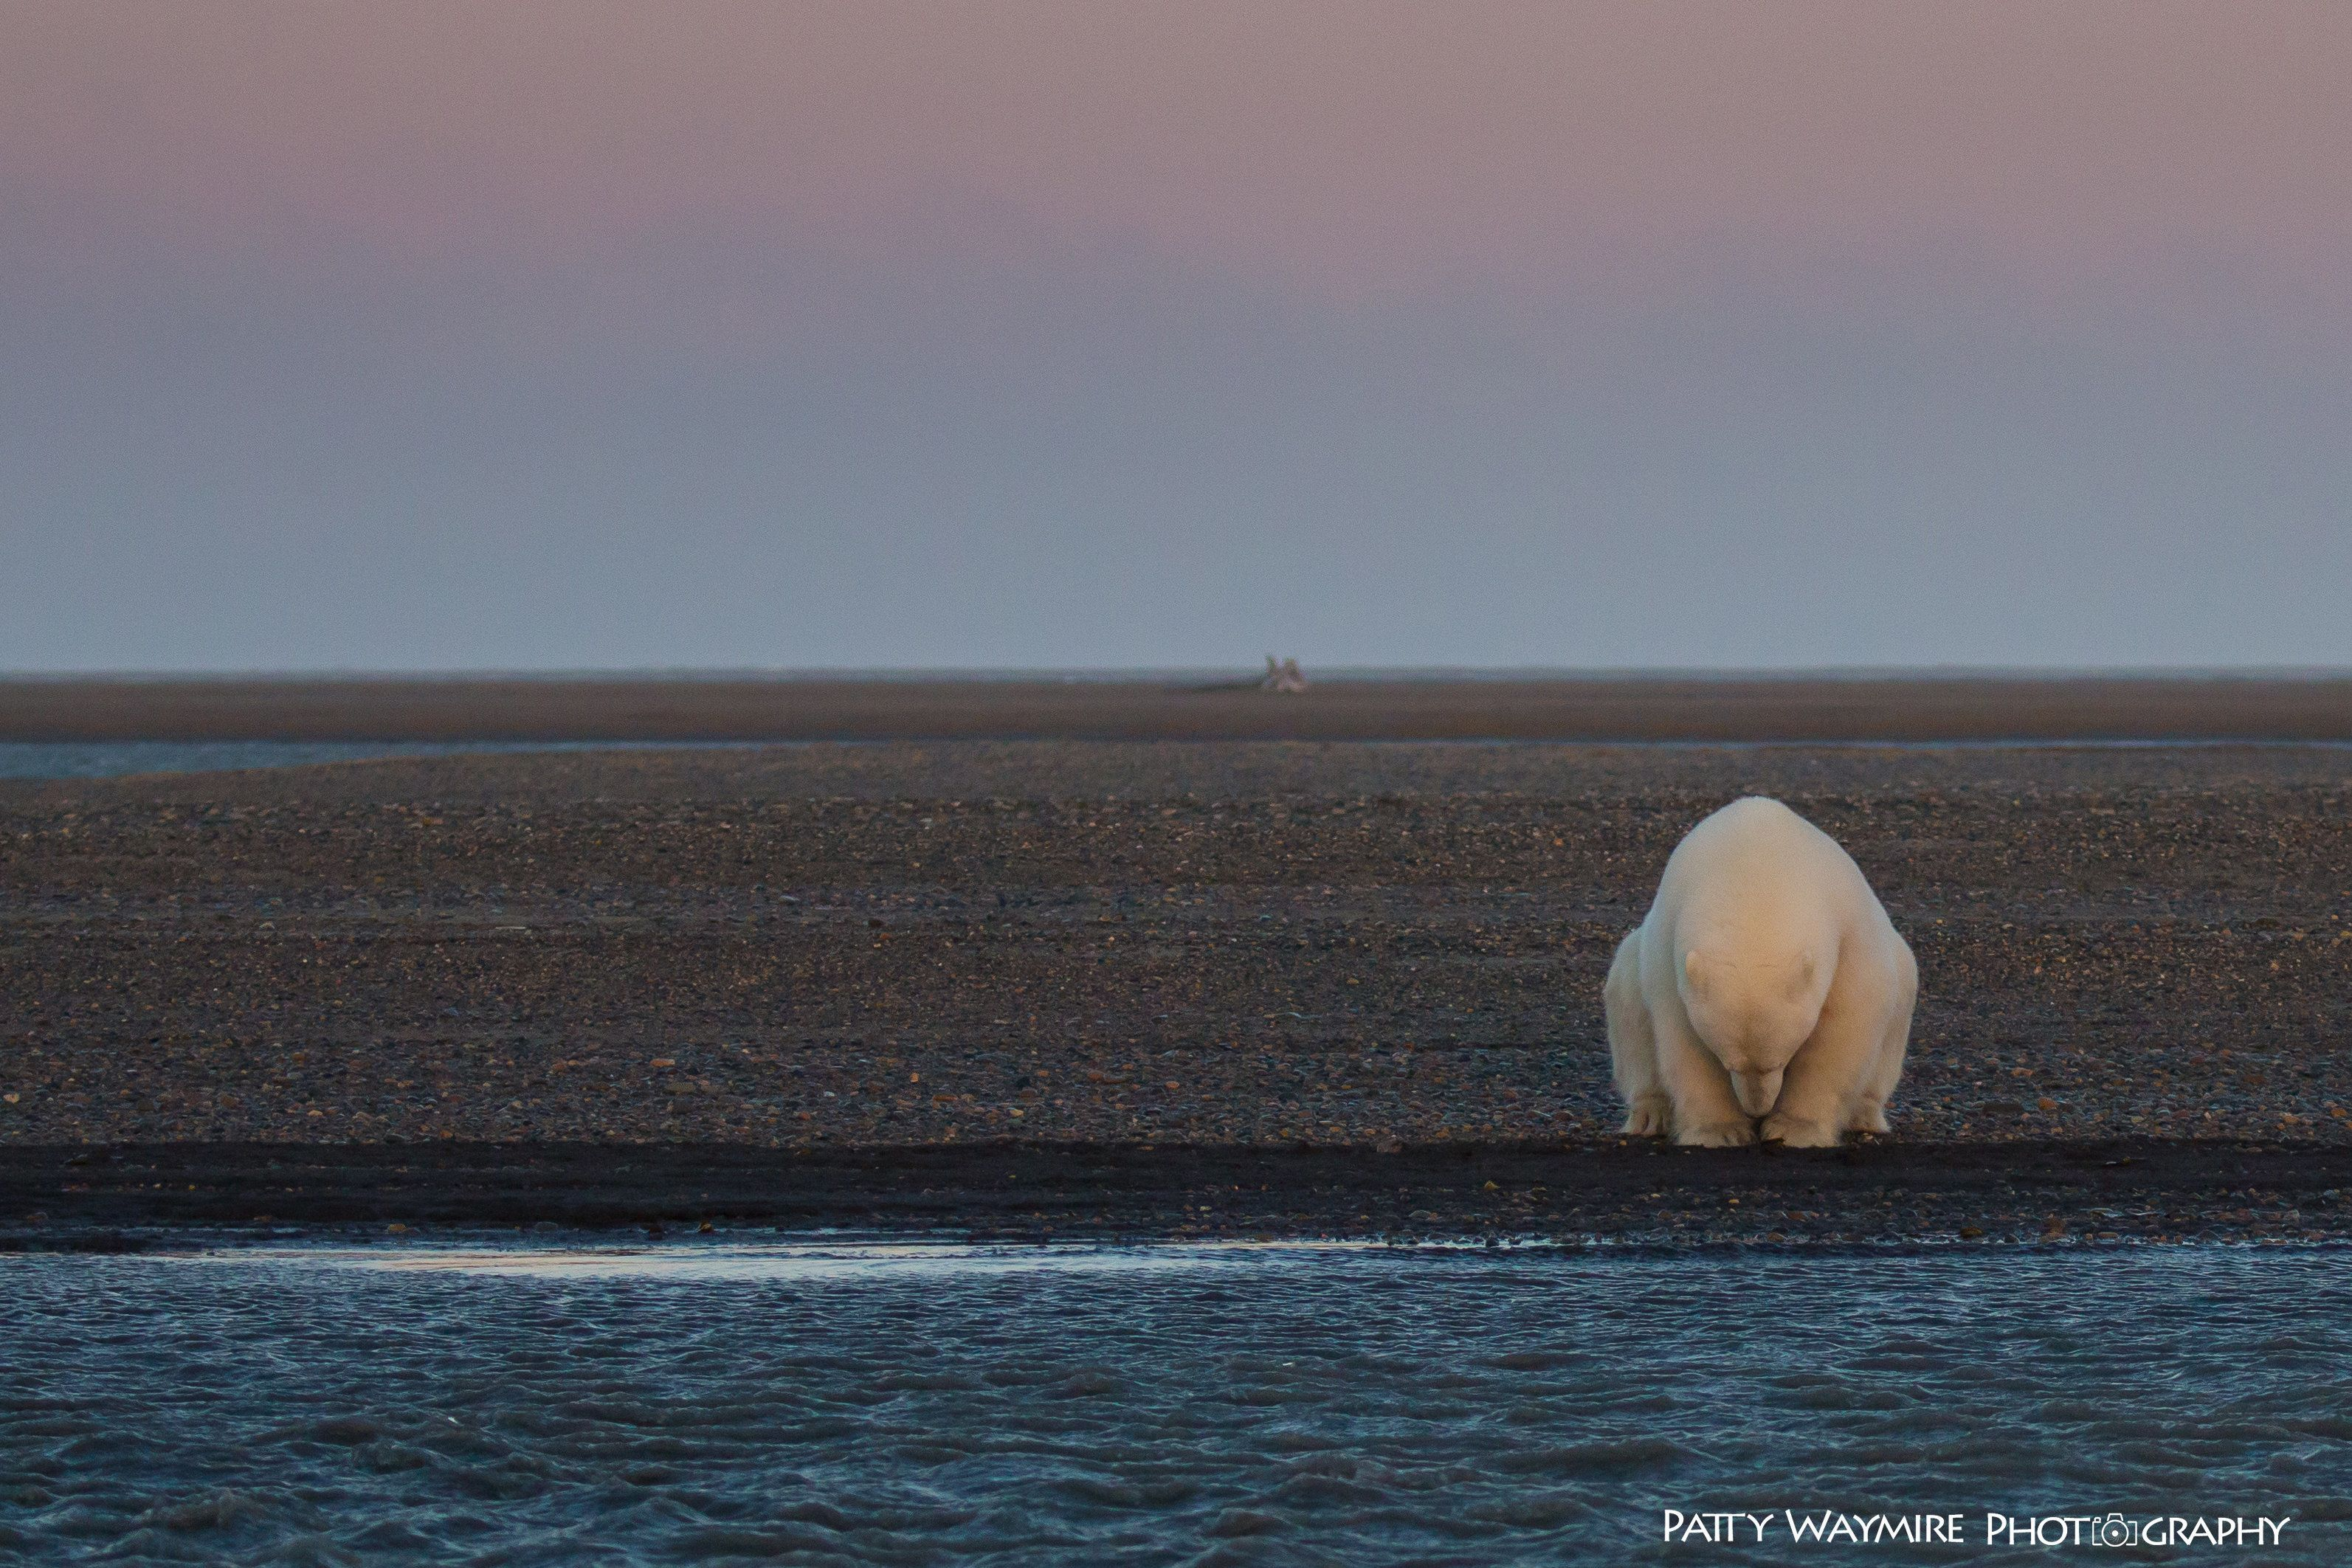 This Photographer Went To Alaska To Photograph Polar Bears In Snow, But Found No